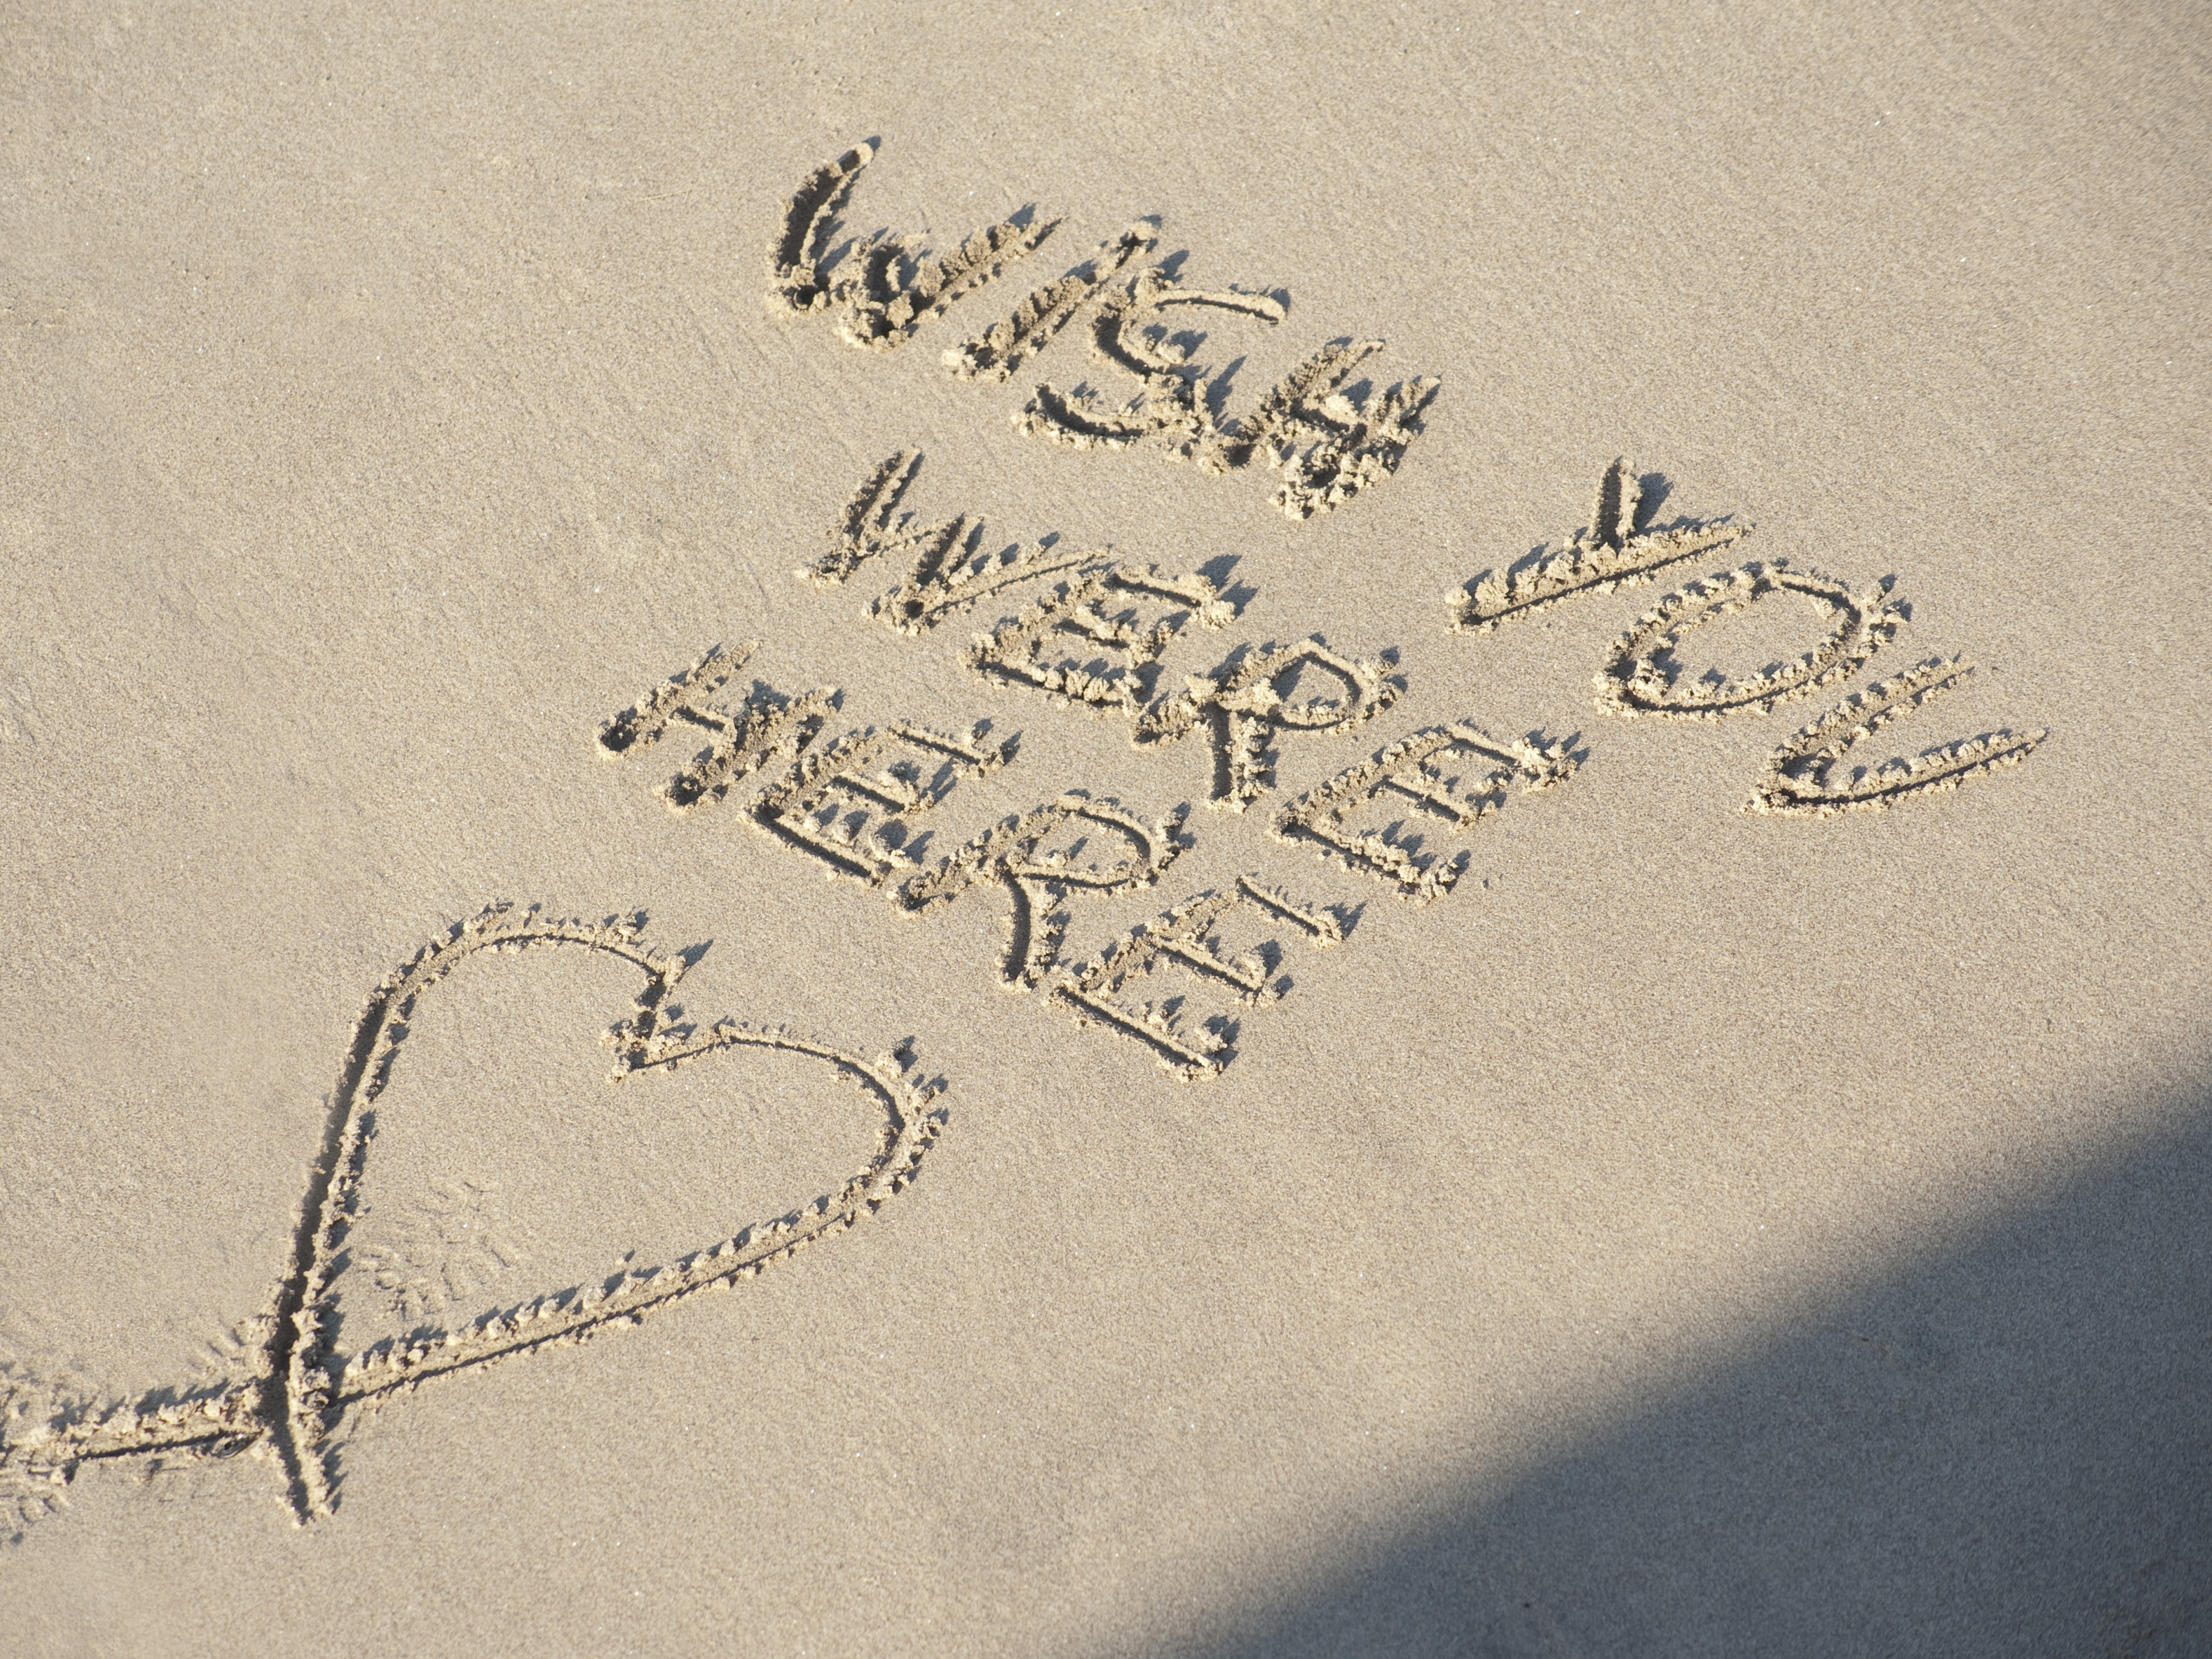 Wish You Were Here Quotes Mesmerizing Wish You Were Here On Beach Sand4235  Stockarch Free Stock Photos